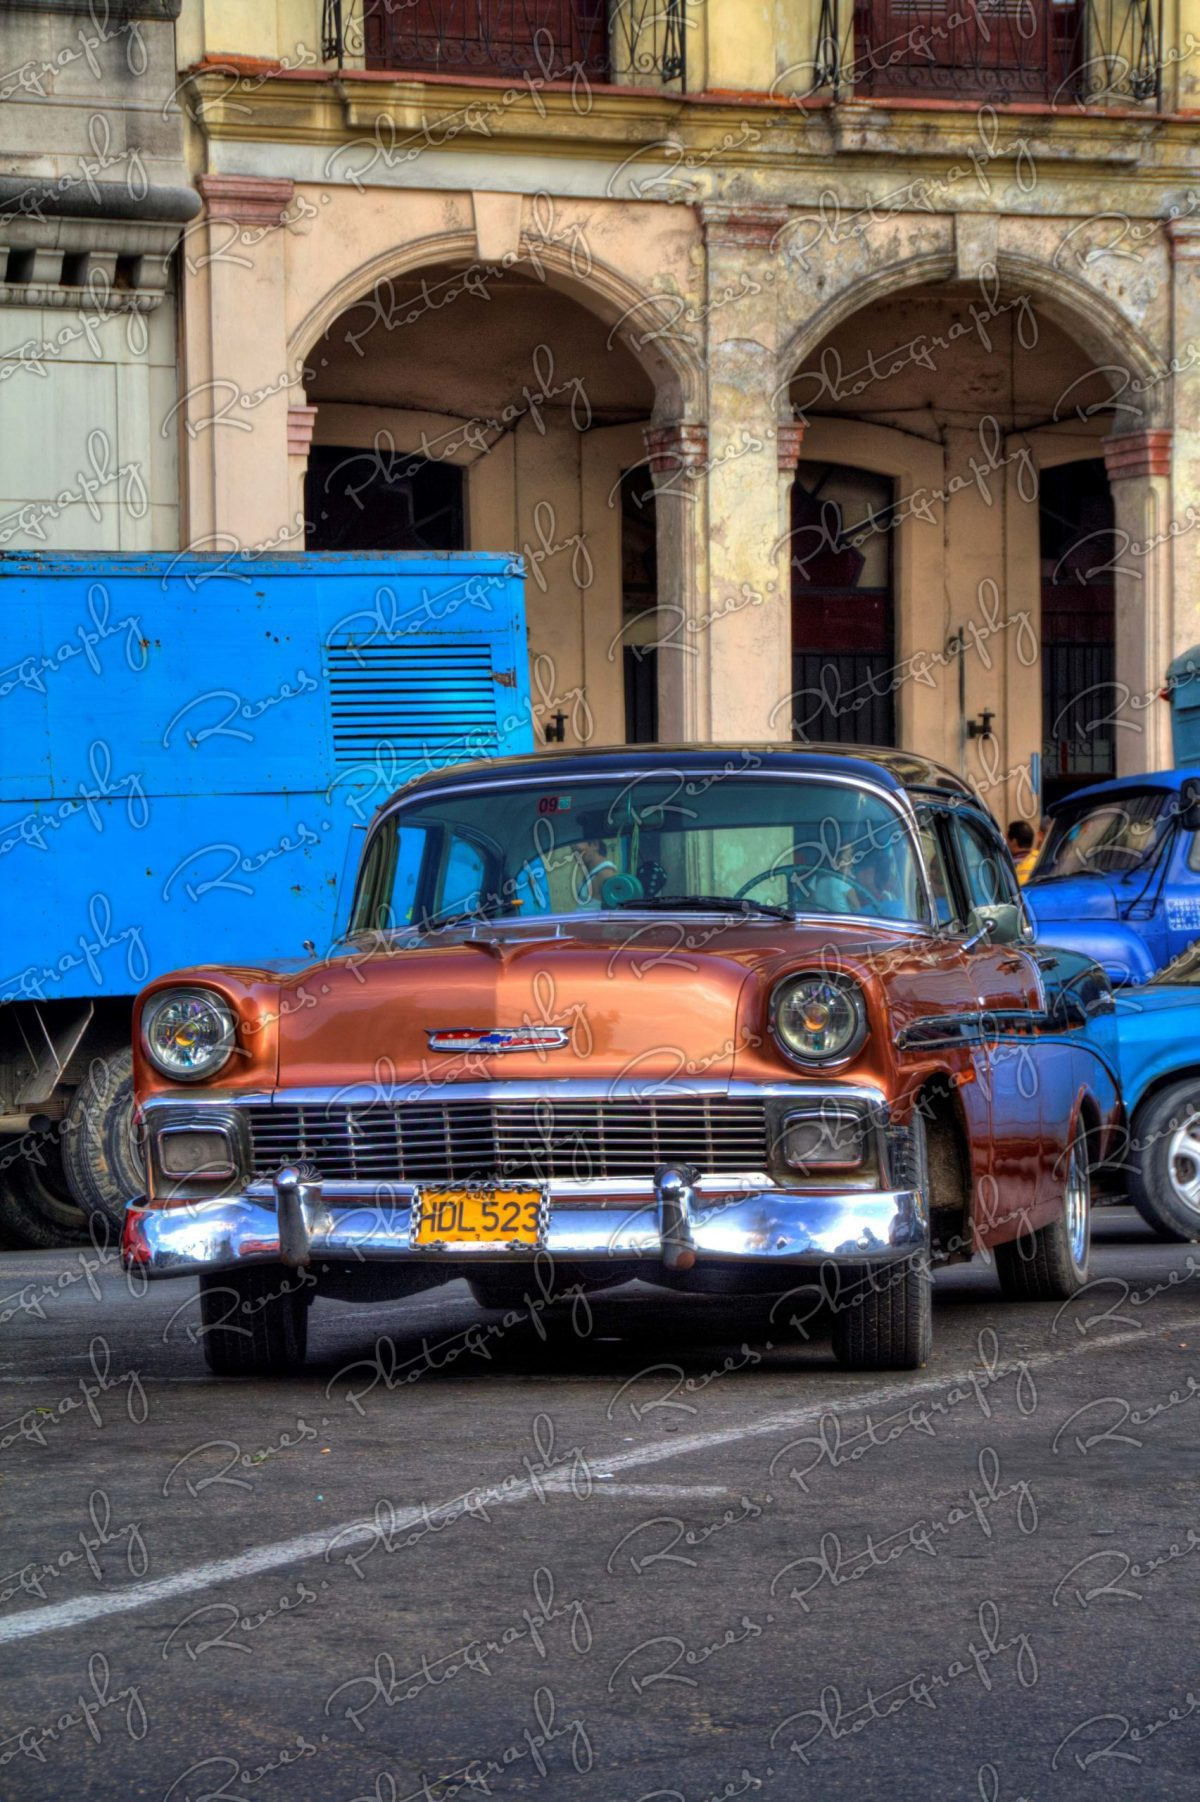 1956 Chevrolet Bel Air on the streets of Havana Cuba 6 scaled